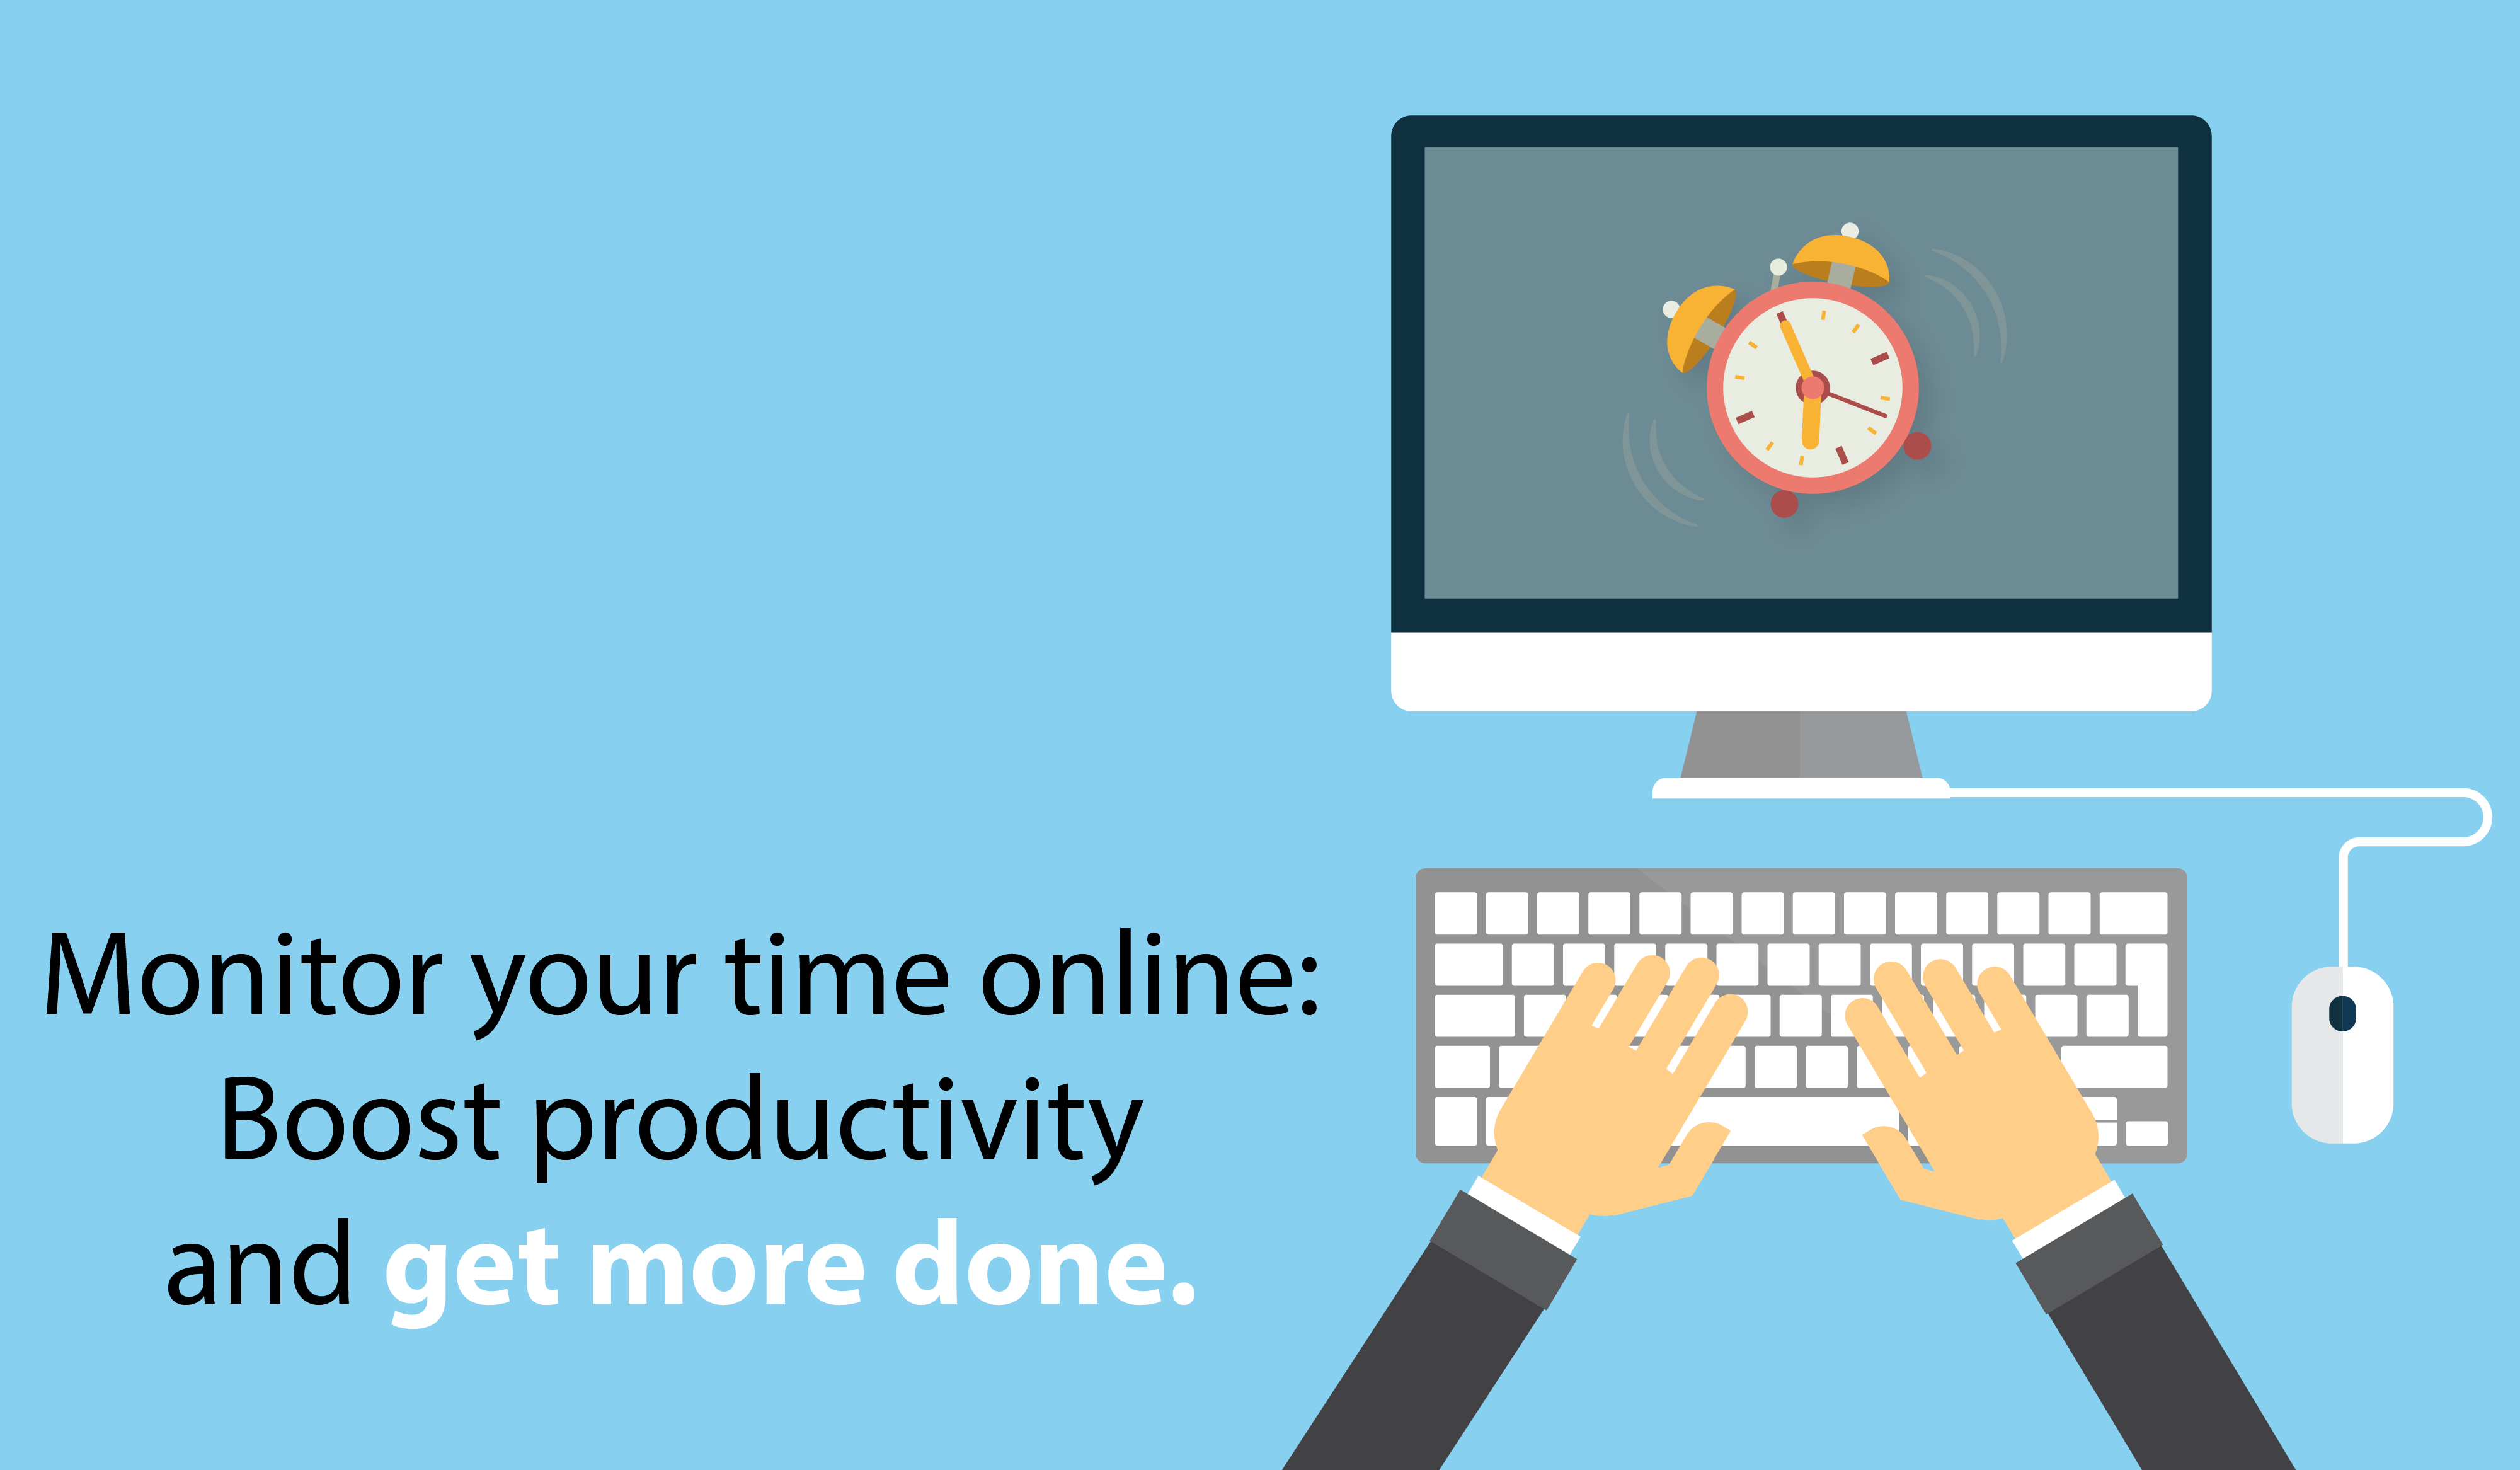 Monitor your time online: Boost your productivity and get more done.